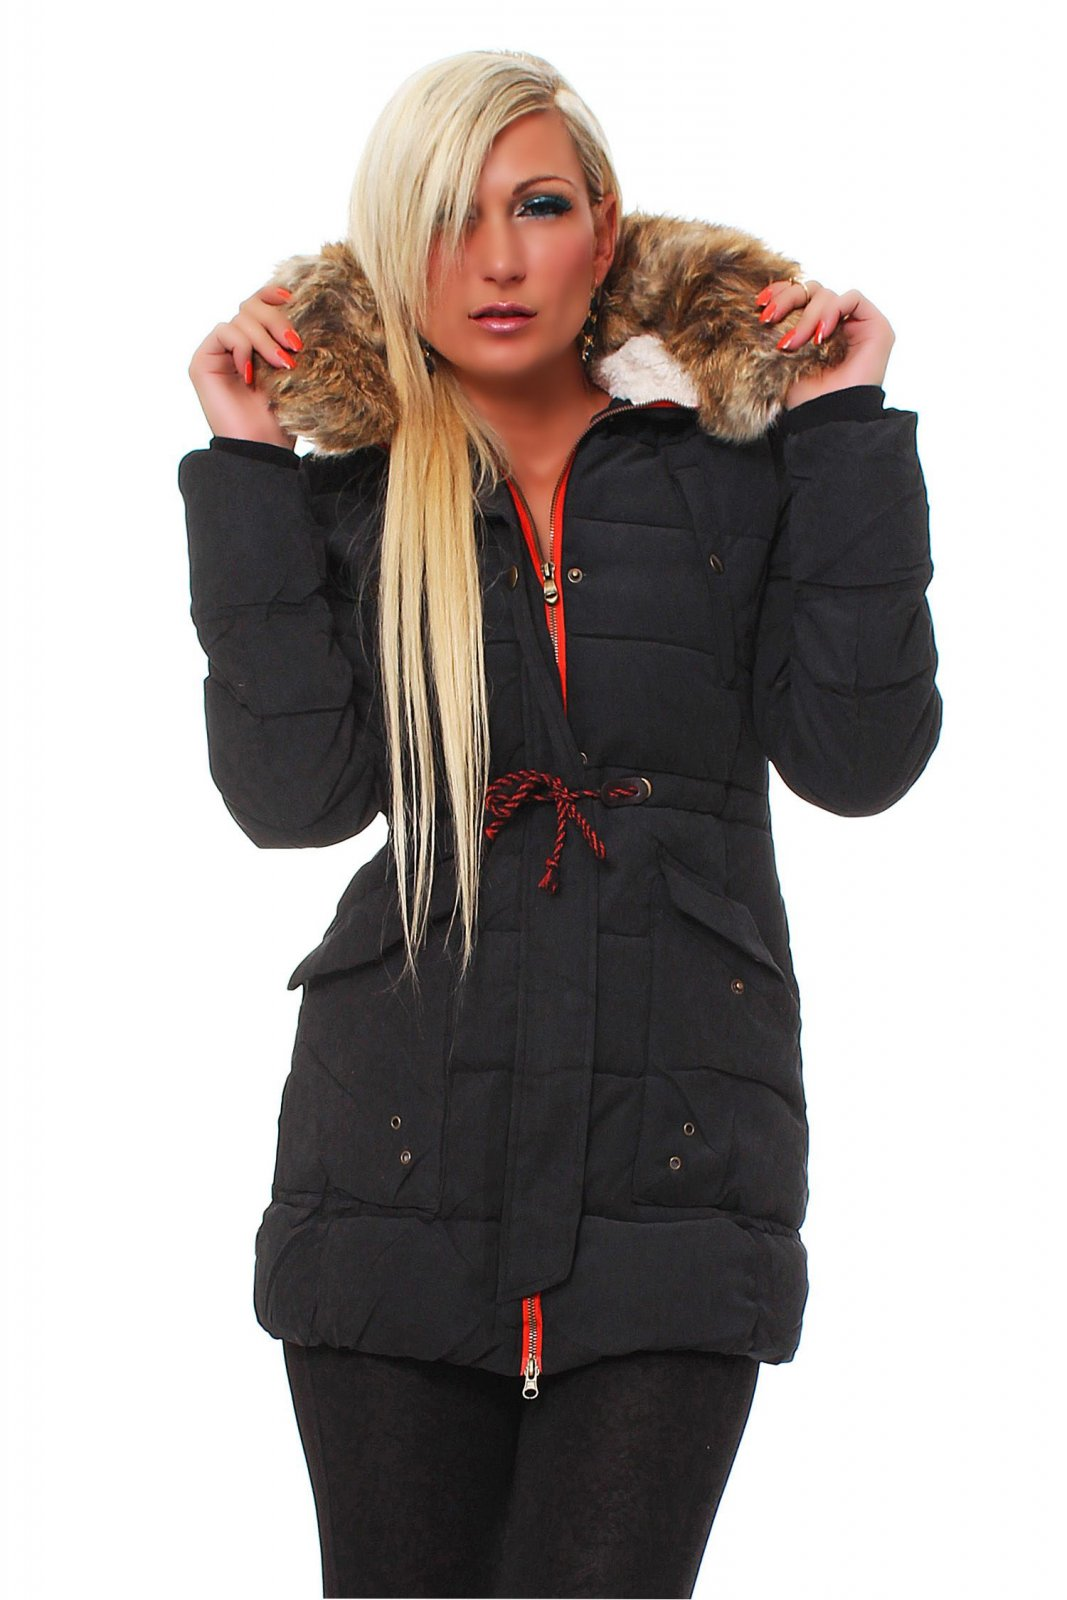 damen winterjacke mit kapuze wintermantel parka lang fell. Black Bedroom Furniture Sets. Home Design Ideas